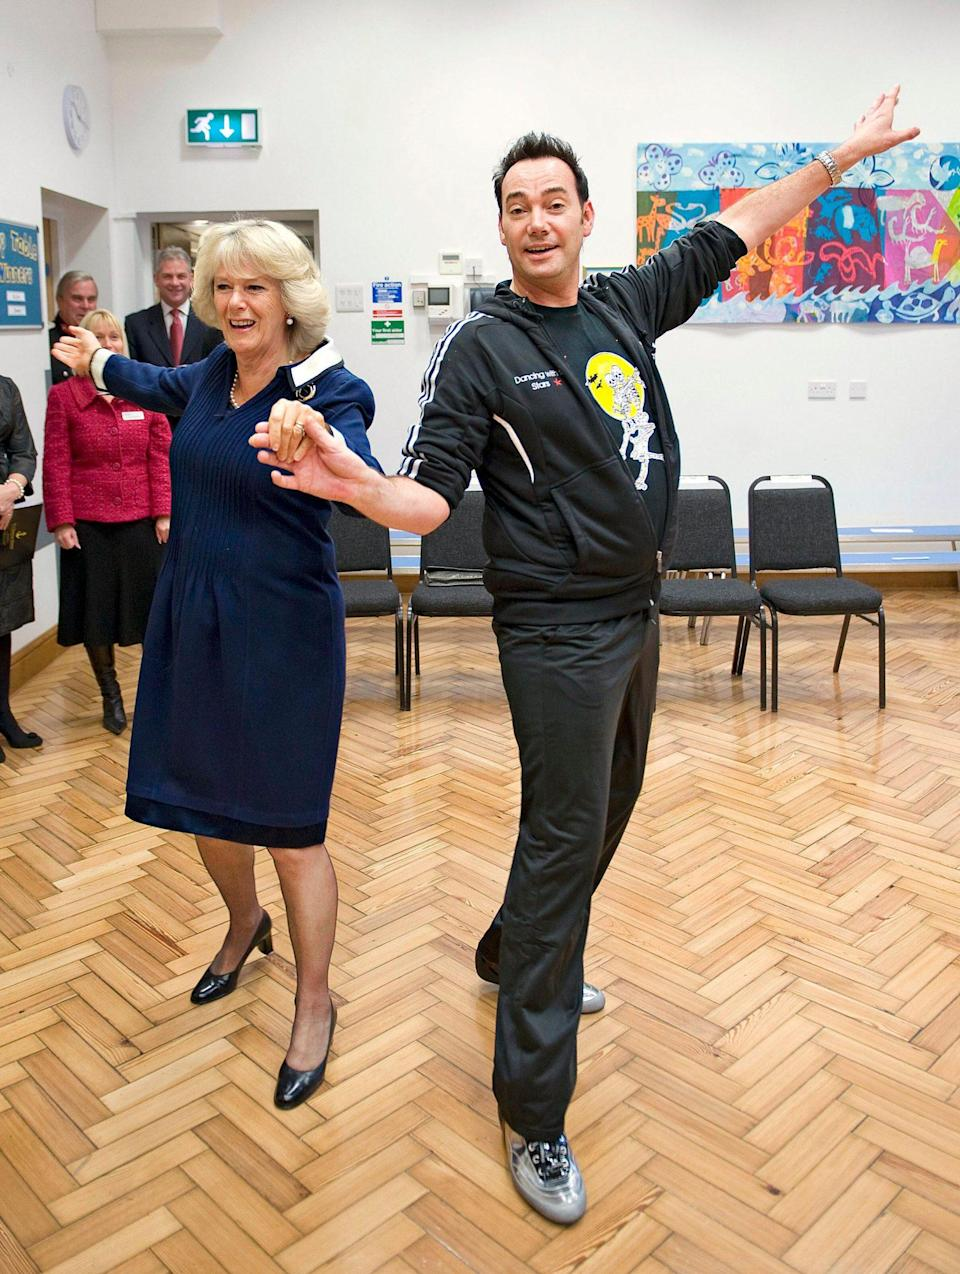 <p>The Duchess of Cornwall demonstrated her cha-cha-cha with <em>Strictly Come Dancing</em> judge Craig Revel Horwood at a primary school in London's West End as part of a 2009 National Osteoporosis Day project to encourage young people to strengthen their bones through dance and activity.</p>